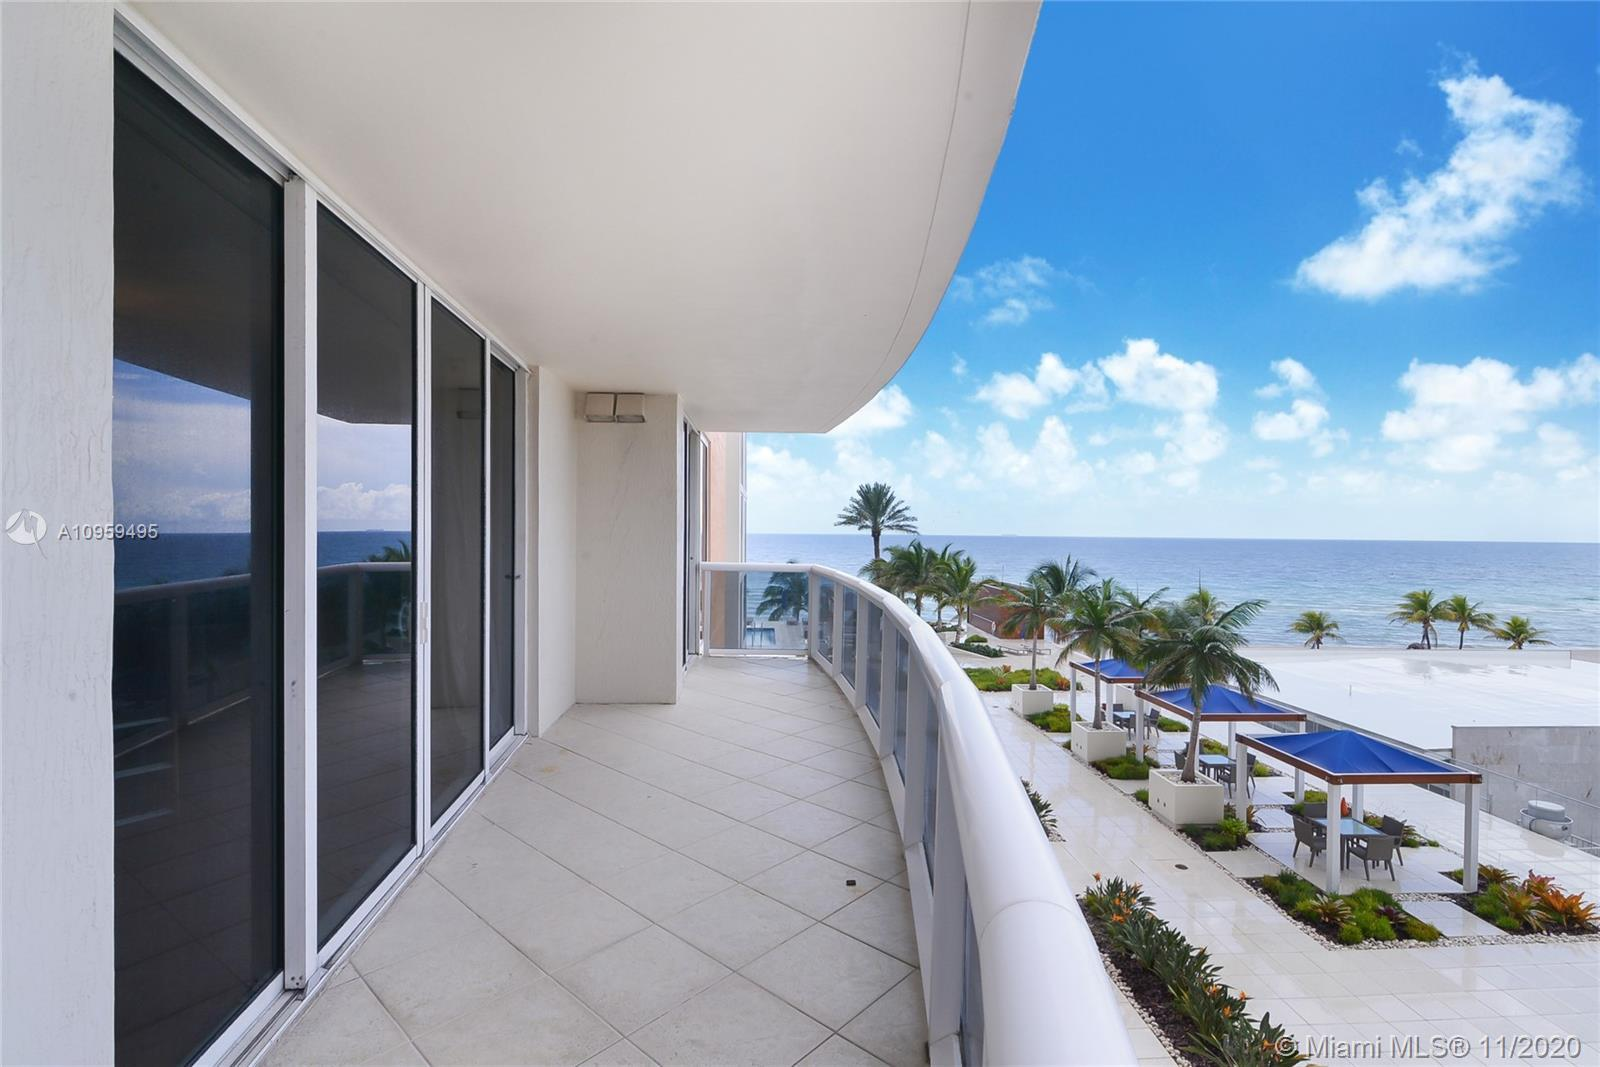 Ocean Three condo located in Sunny Isles Beach offered for sale. Fully furnished two bedroom & two b